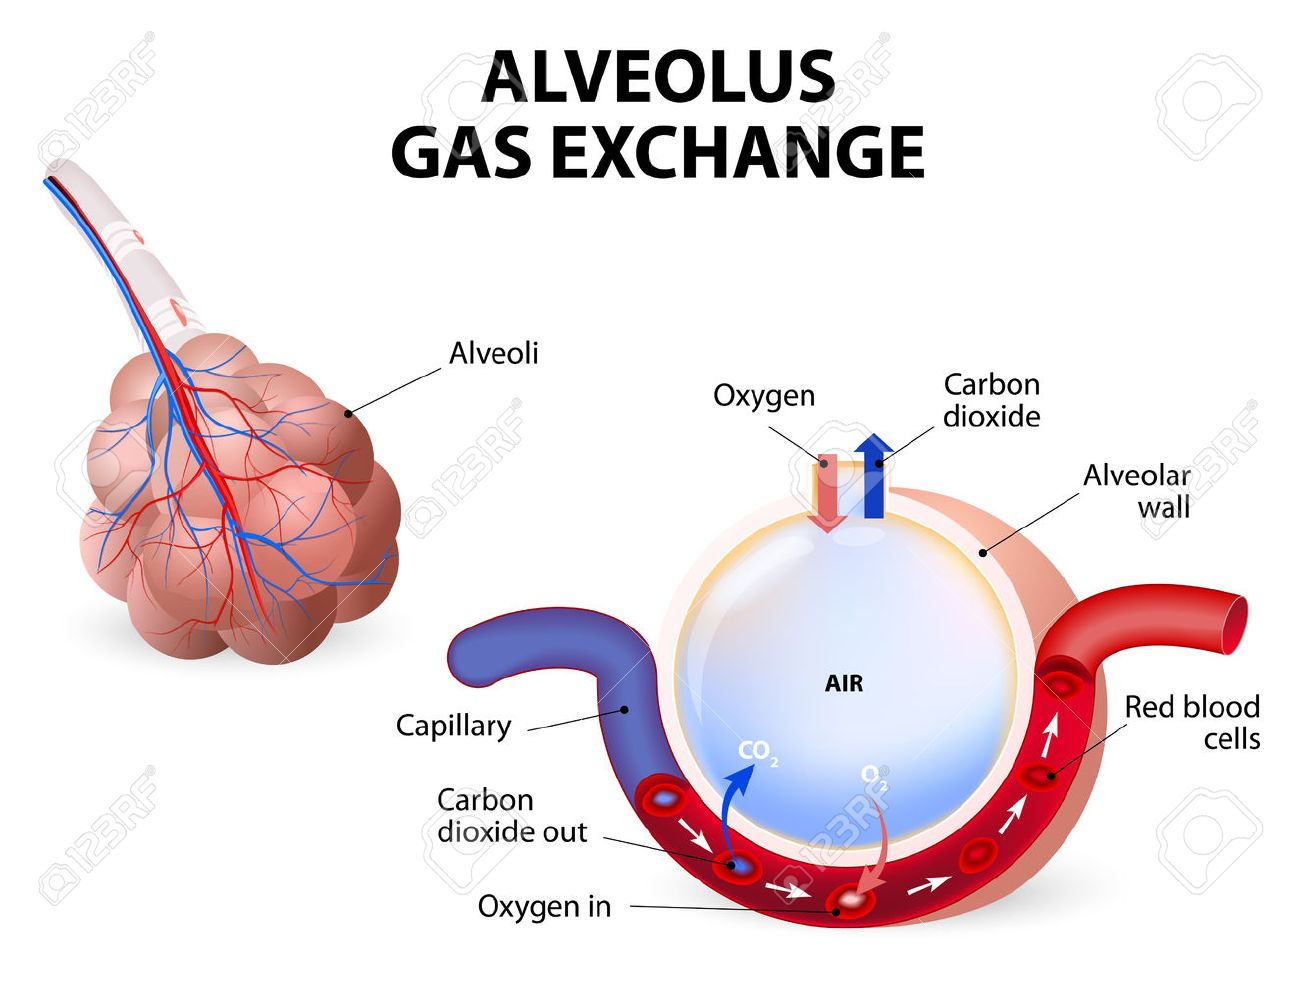 hight resolution of alveolus gas exchange alveoli and capillaries in the lungs stock vector 34806367